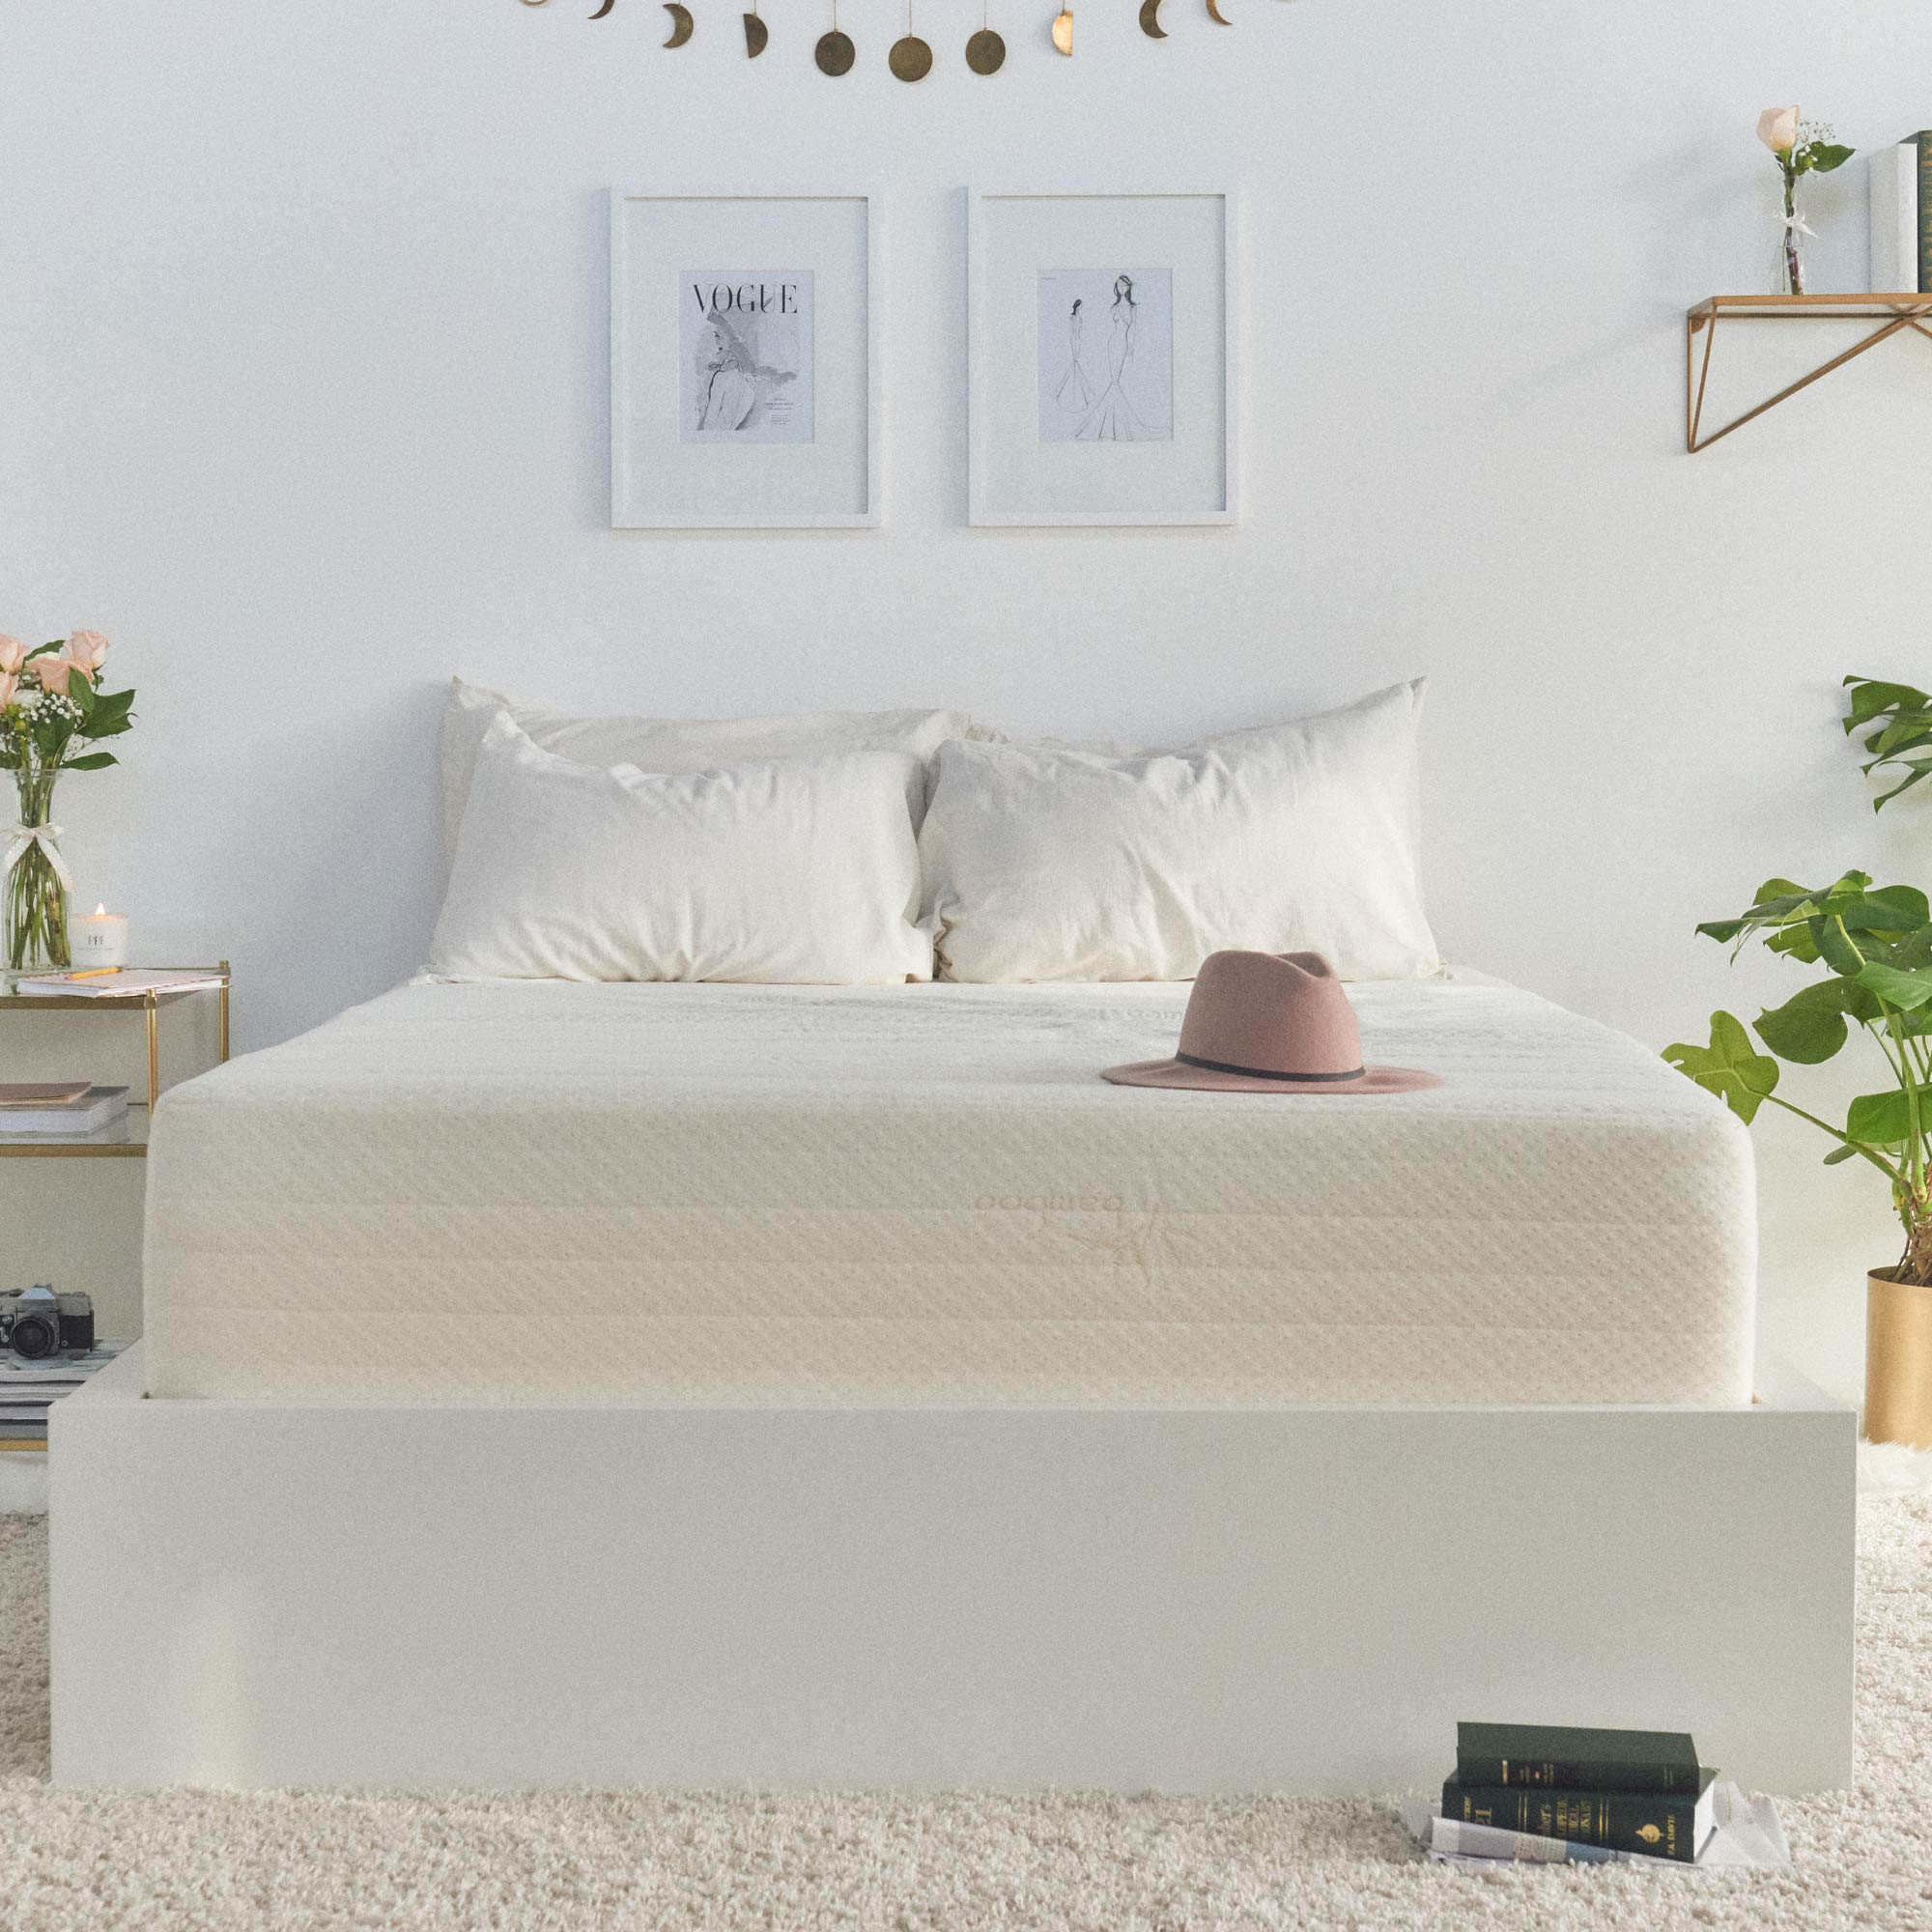 Brentwood Home Cypress Mattress, Bamboo Derived Rayon Cover, Gel Memory Foam, Made in USA, 13-Inch, Twin XL